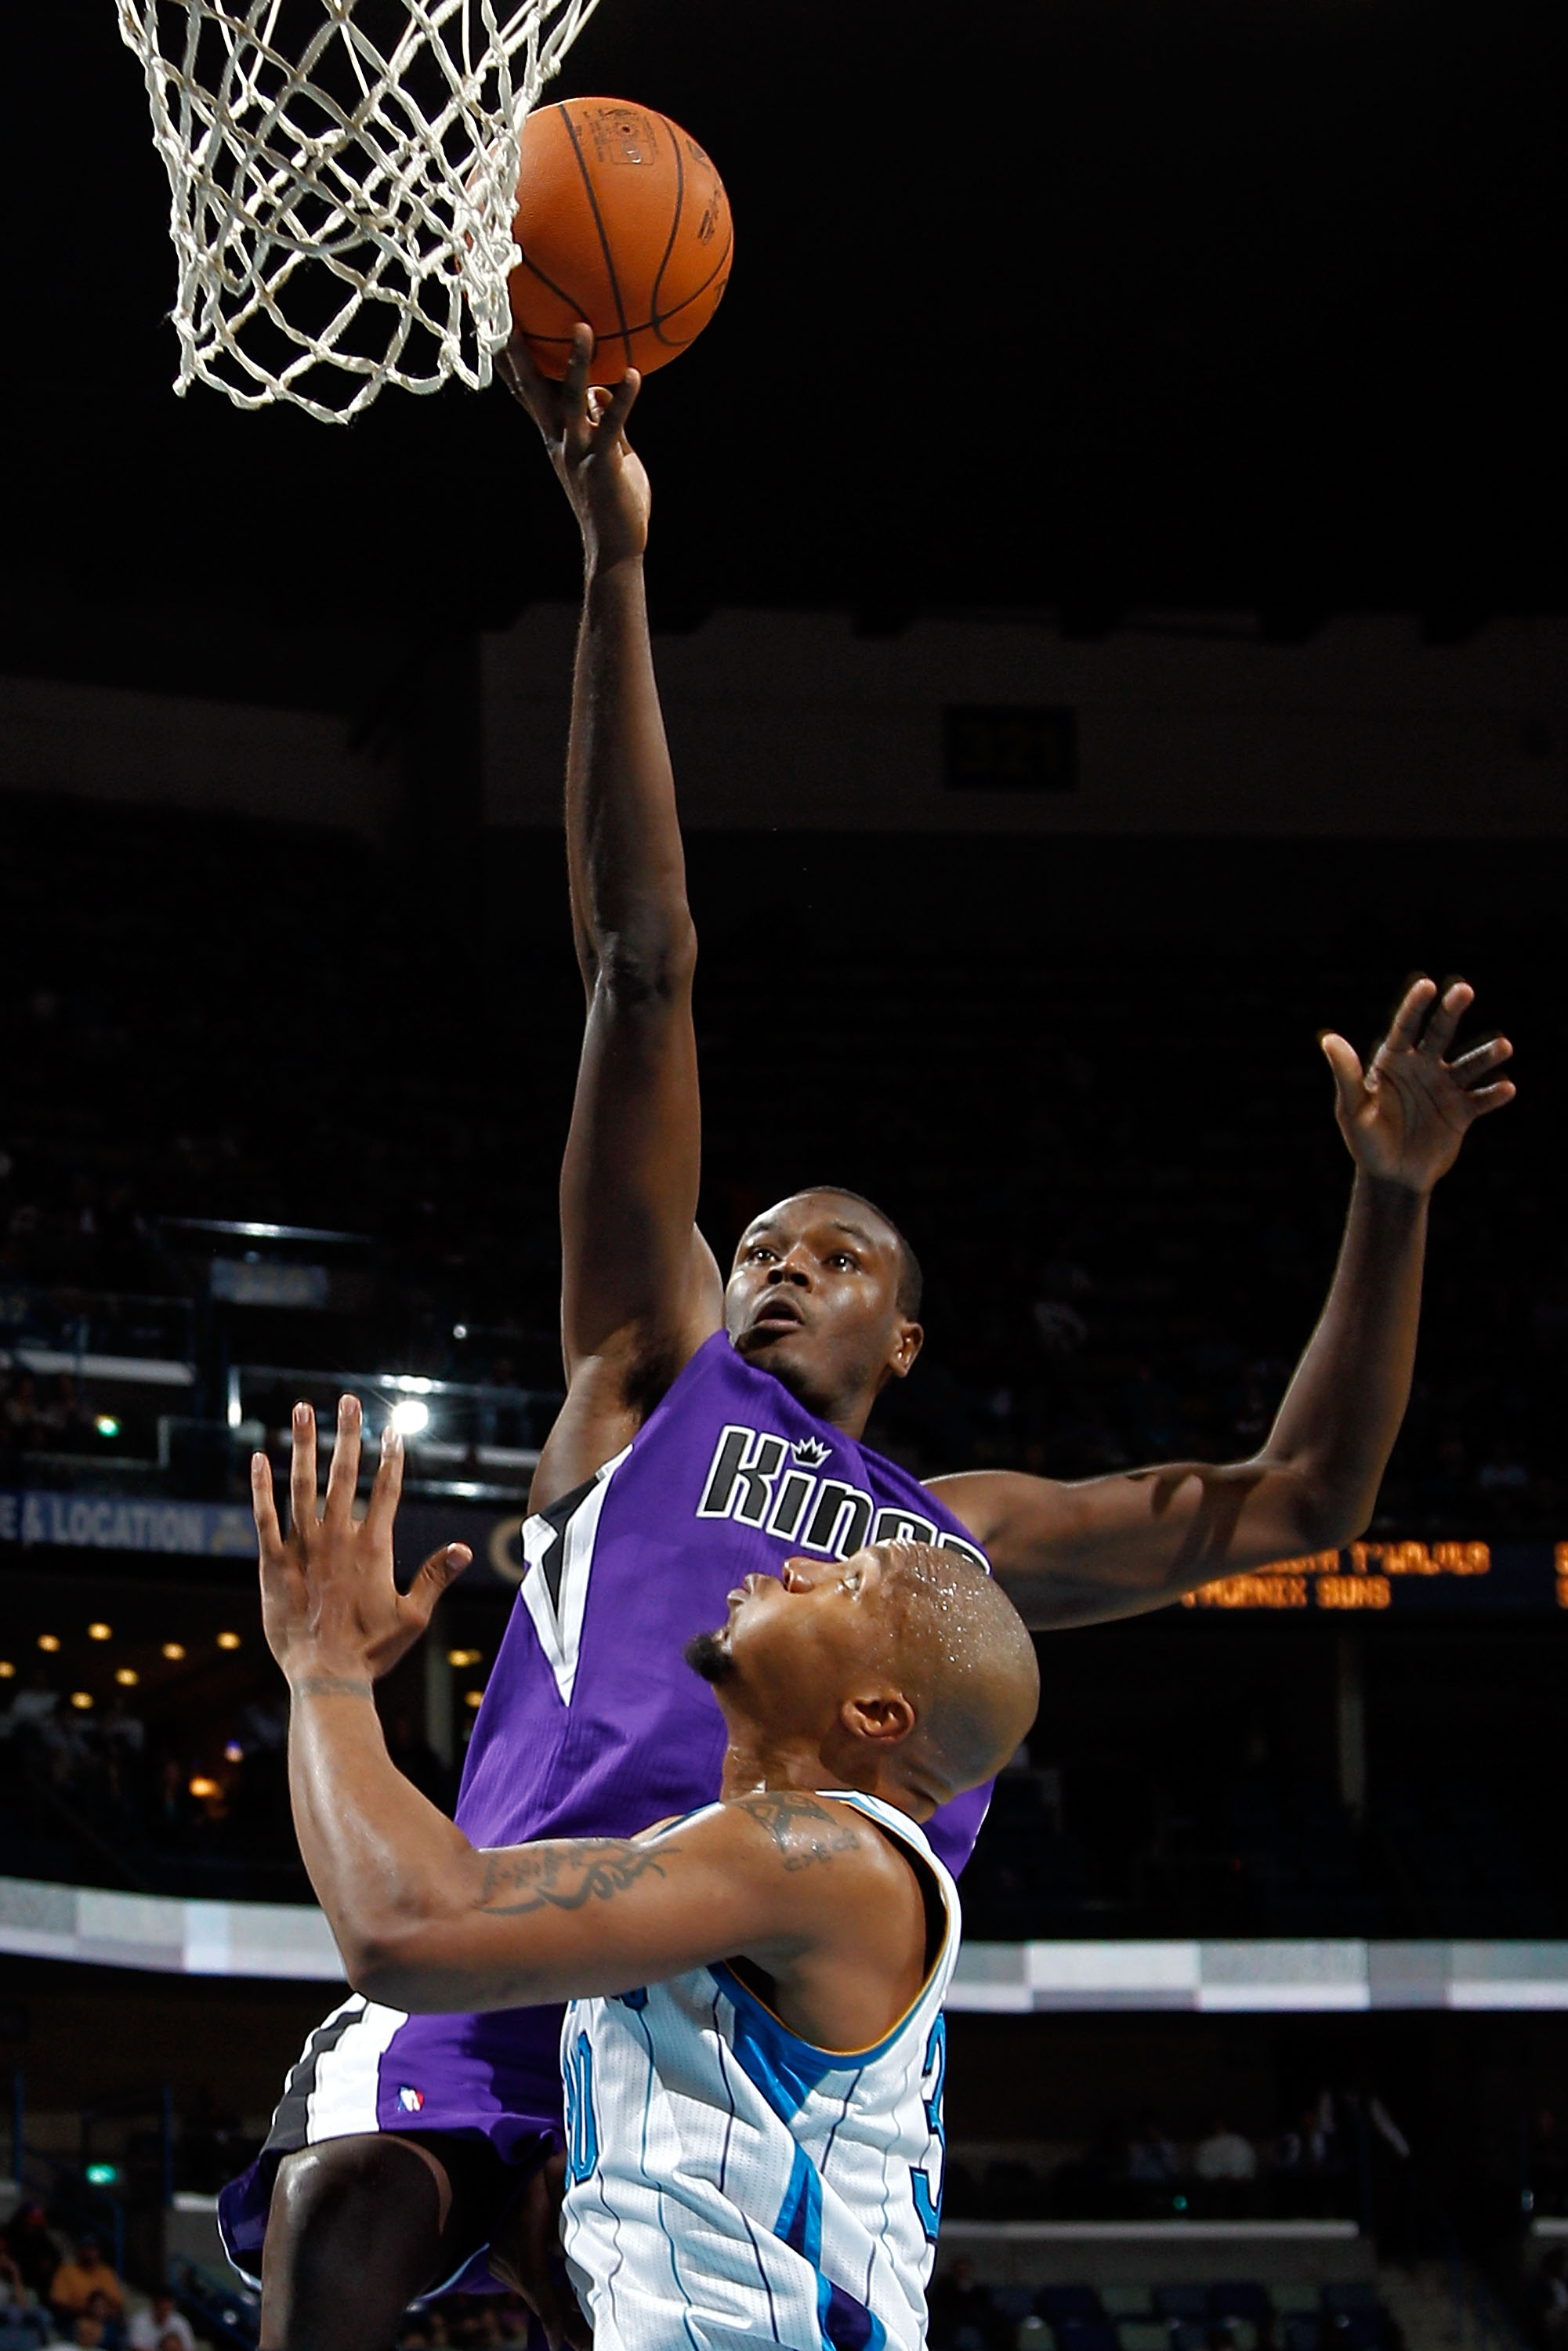 NEW ORLEANS, LA - DECEMBER 15:  Samuel Dalembert #10 of the Sacramento Kings shoots the ball over David West #30 of the New Orleans Hornets  at the New Orleans Arena on December 15, 2010 in New Orleans, Louisiana.  NOTE TO USER: User expressly acknowledge